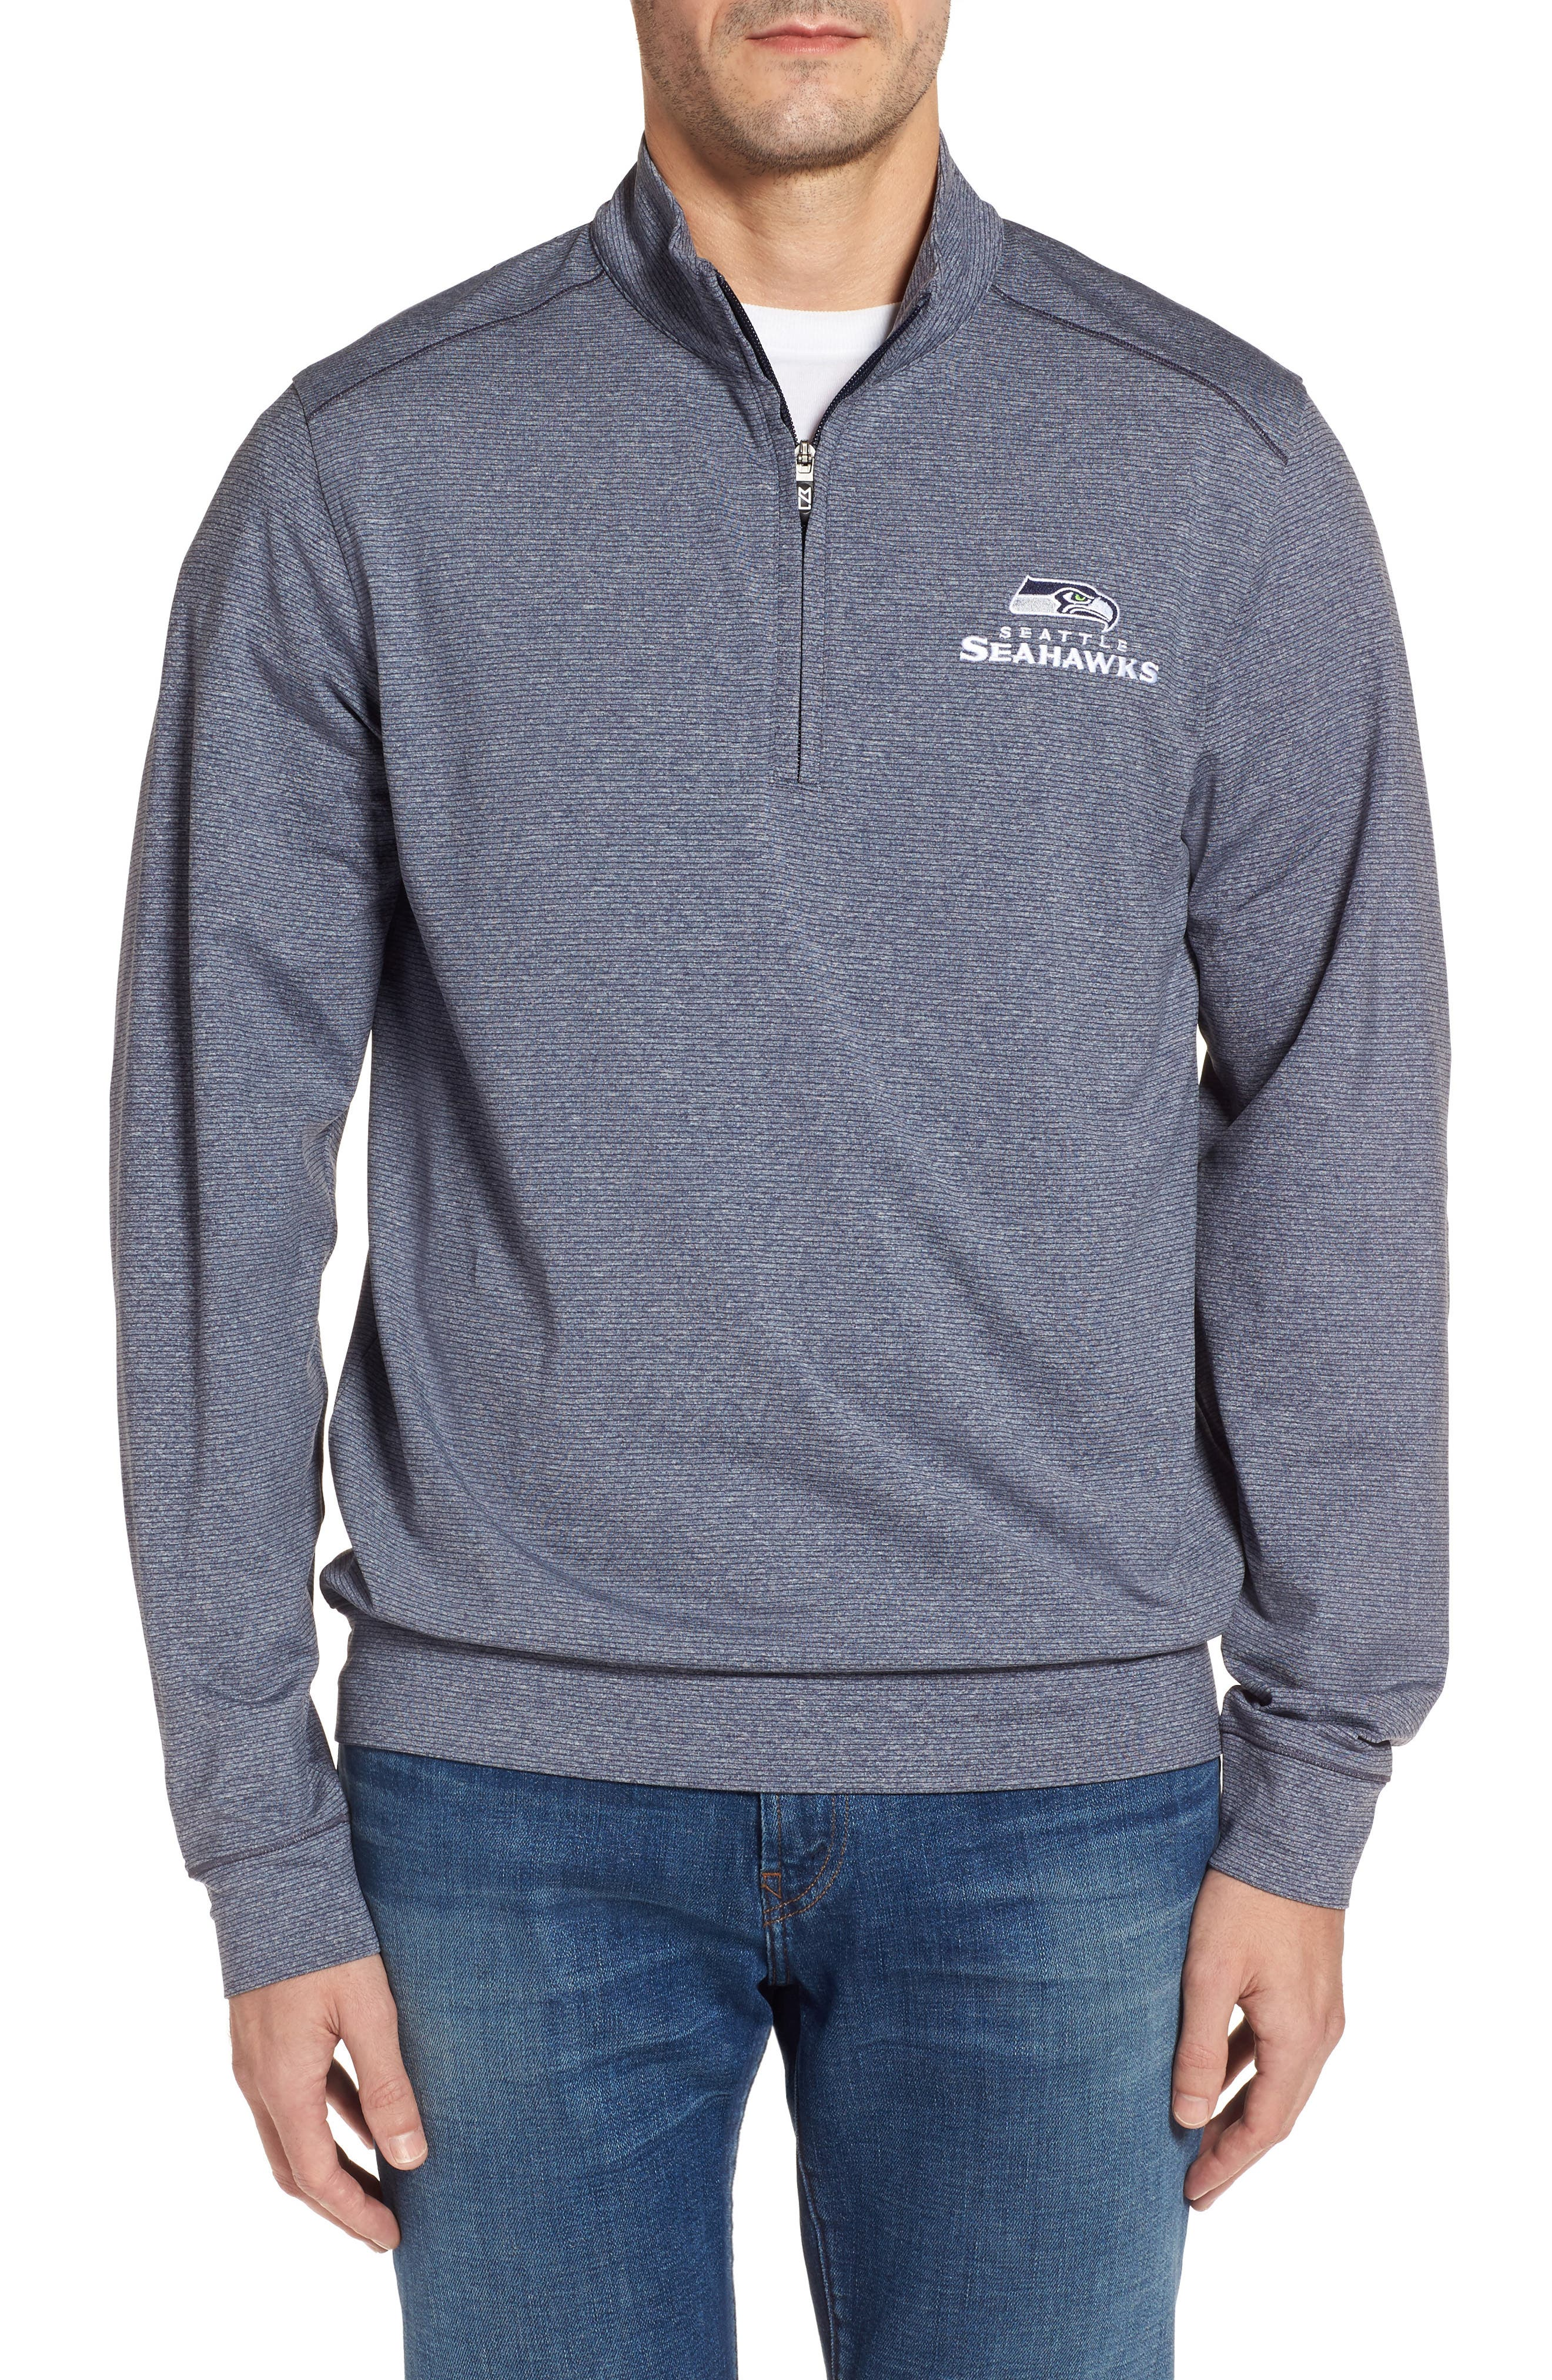 Seahawks Shoreline Quarter Zip Pullover,                         Main,                         color, Liberty Navy Heather